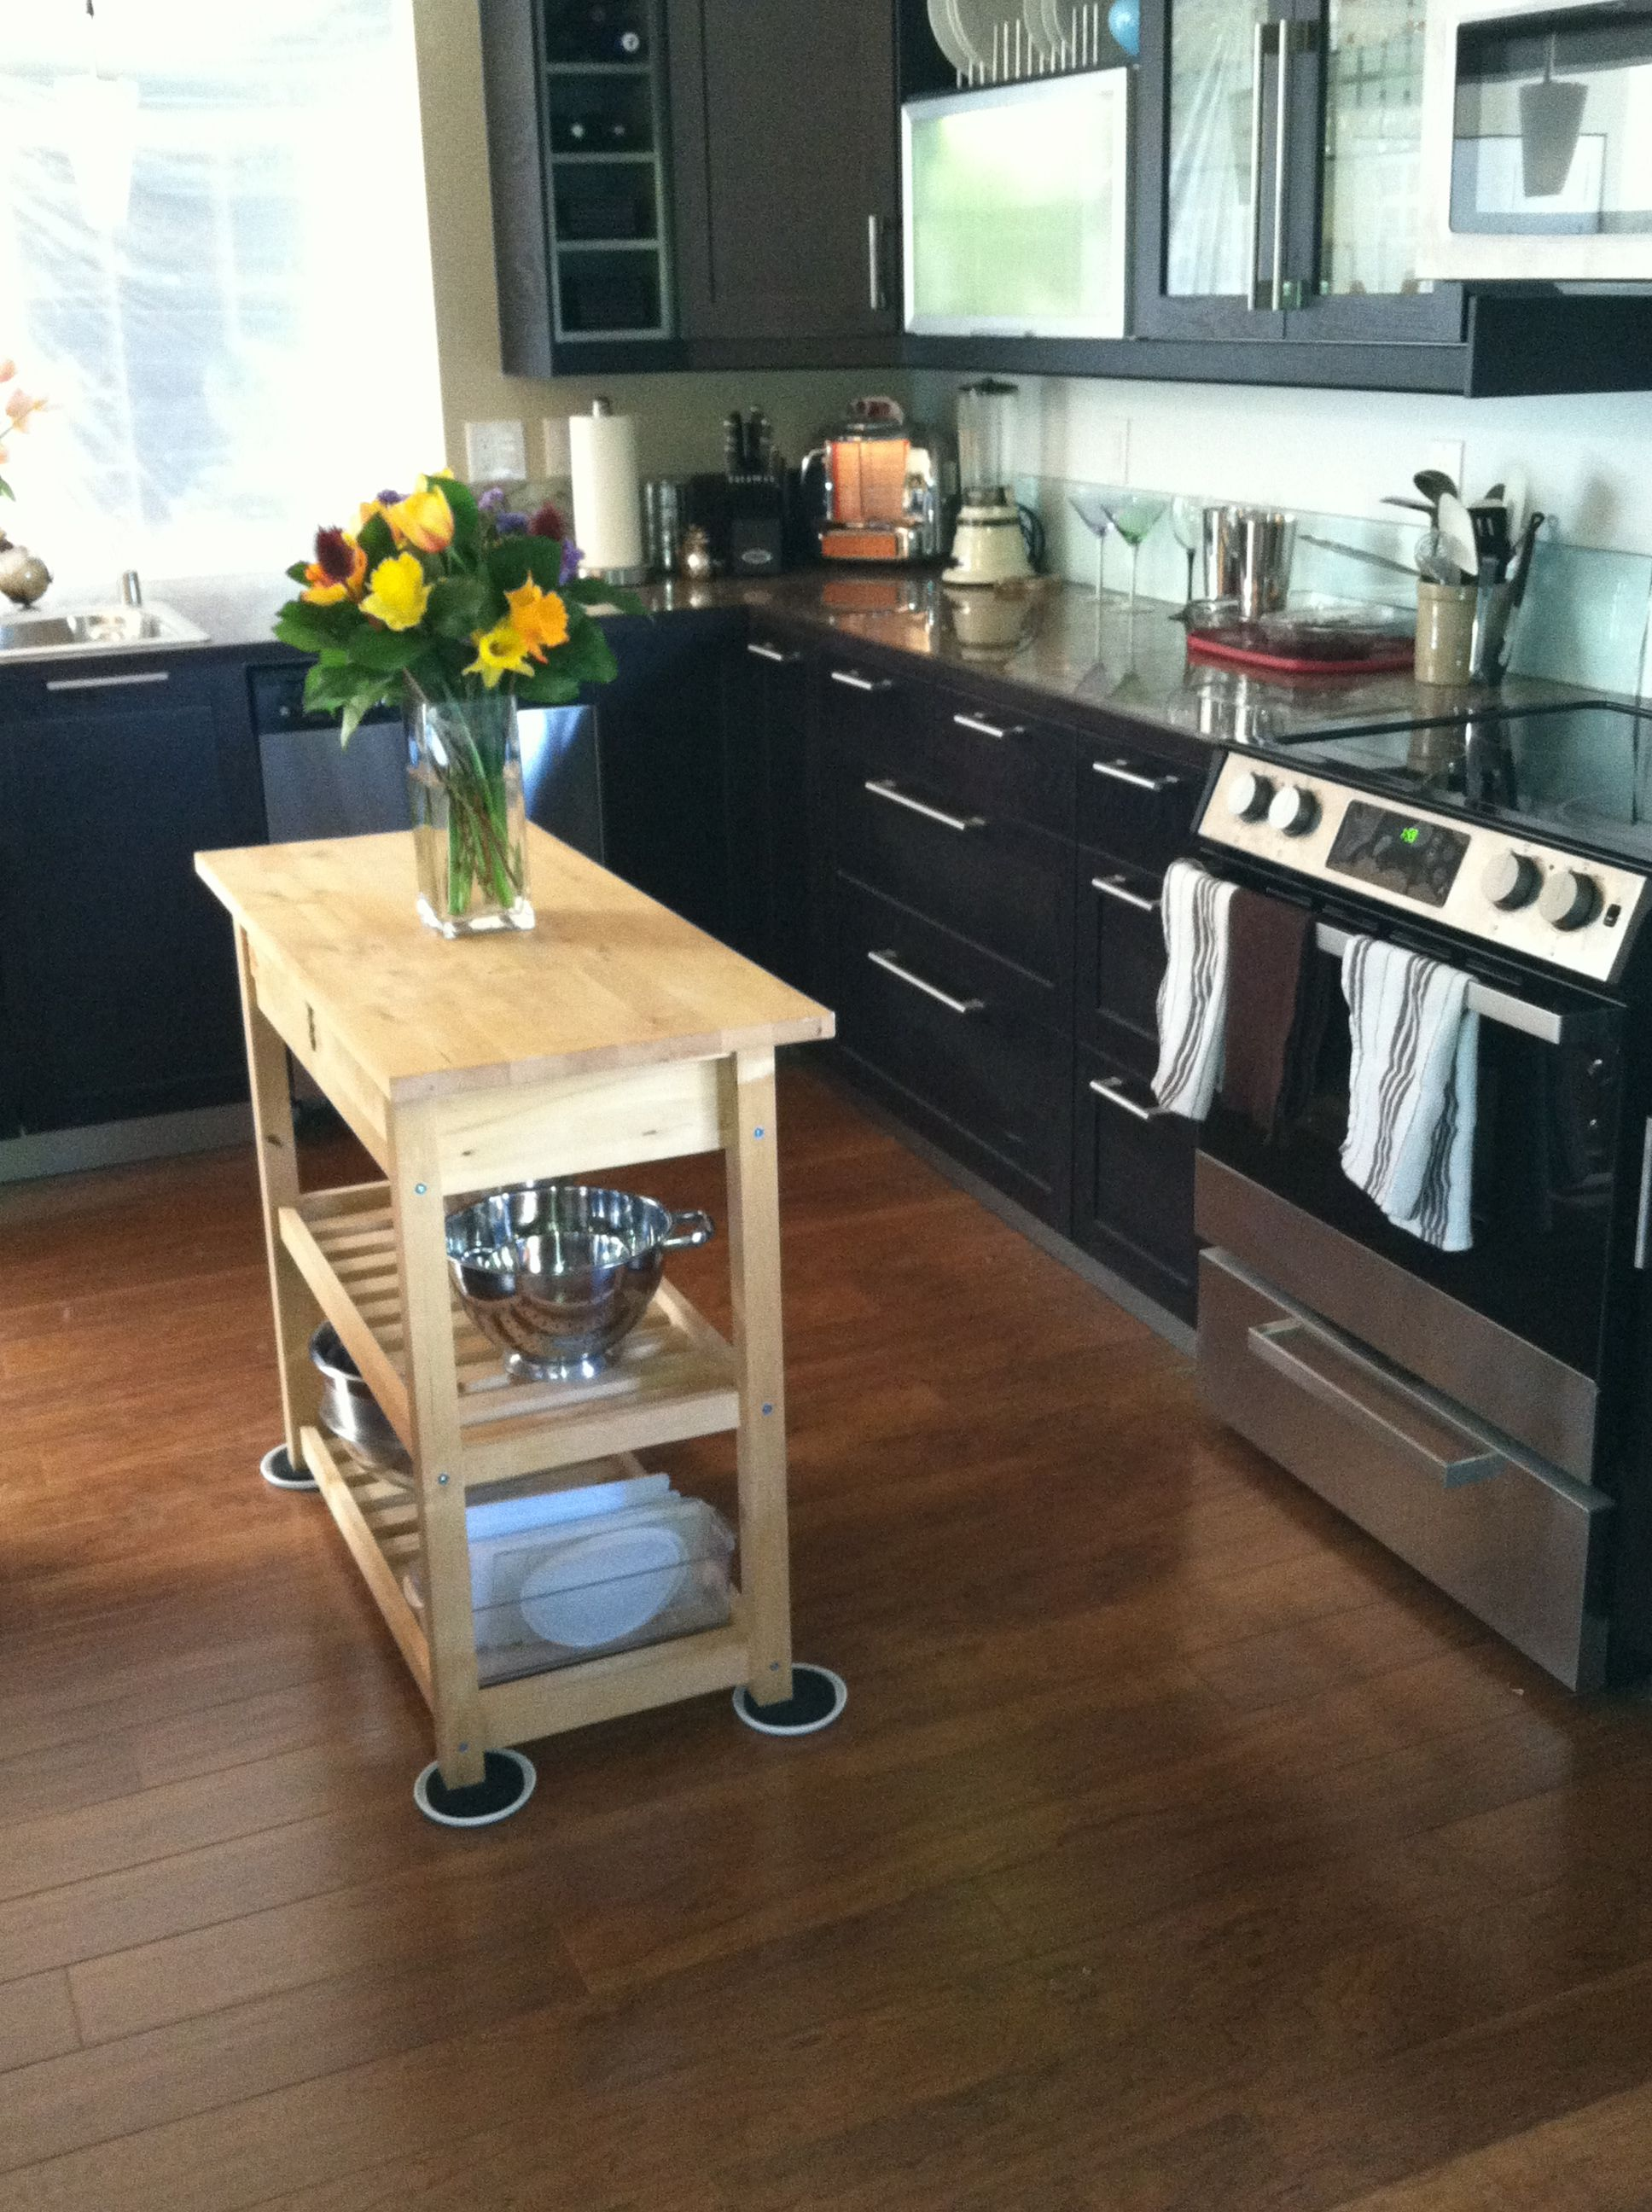 My kitchen remodel all ikea except for floor which was costco